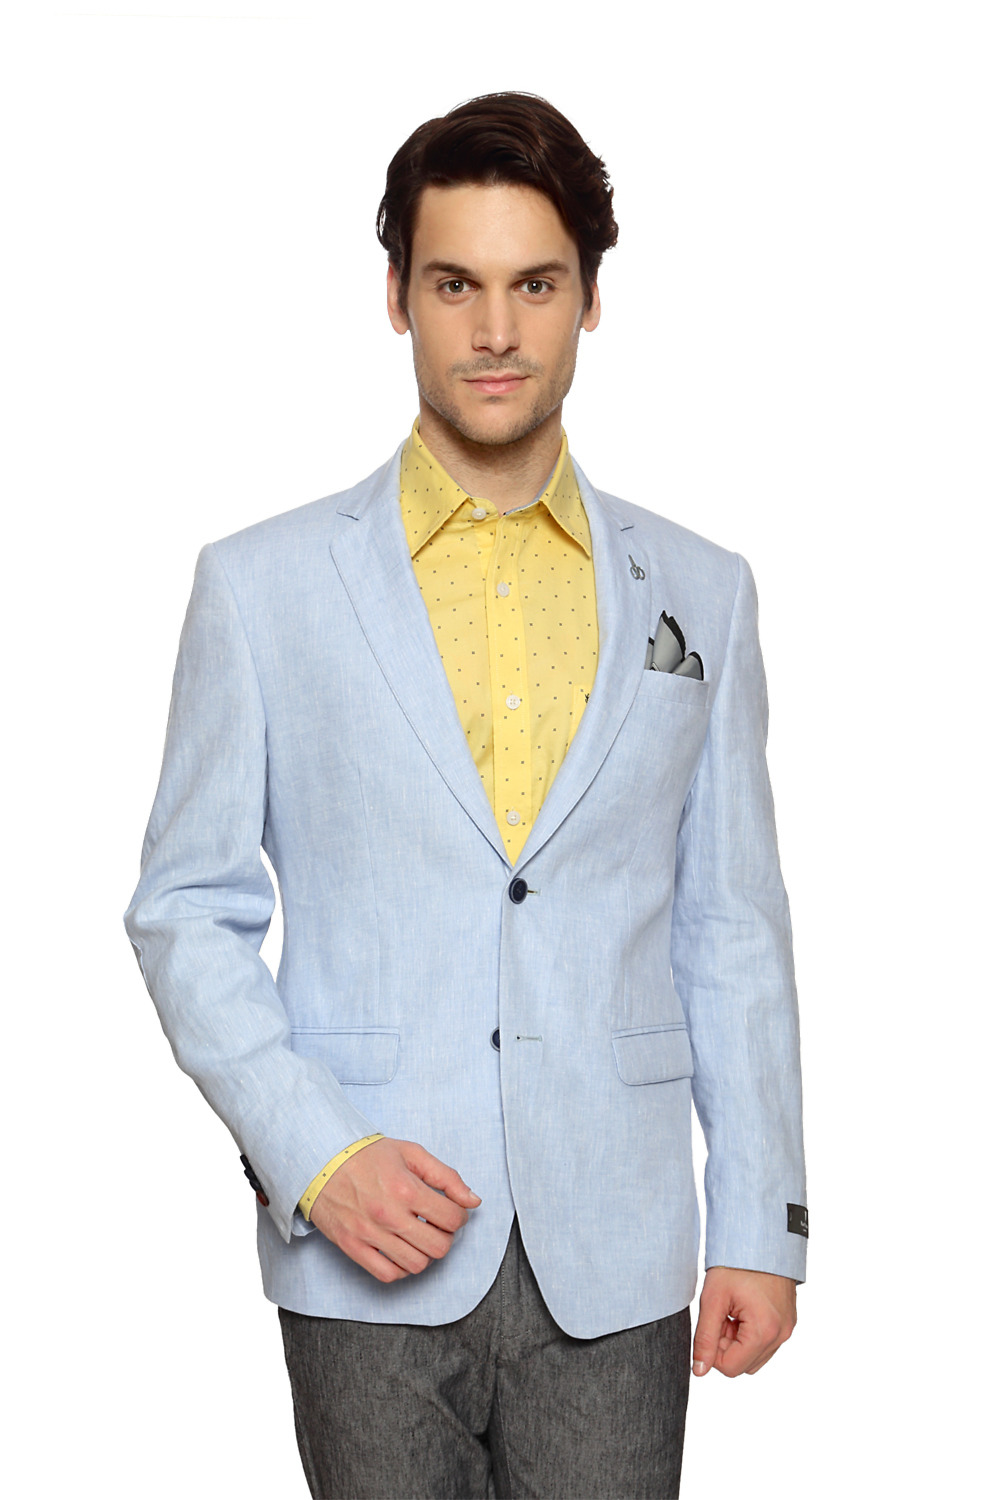 Suits & Blazer-Buy Mens Van Heusen Suits & Blazer | Vanheusenindia.com